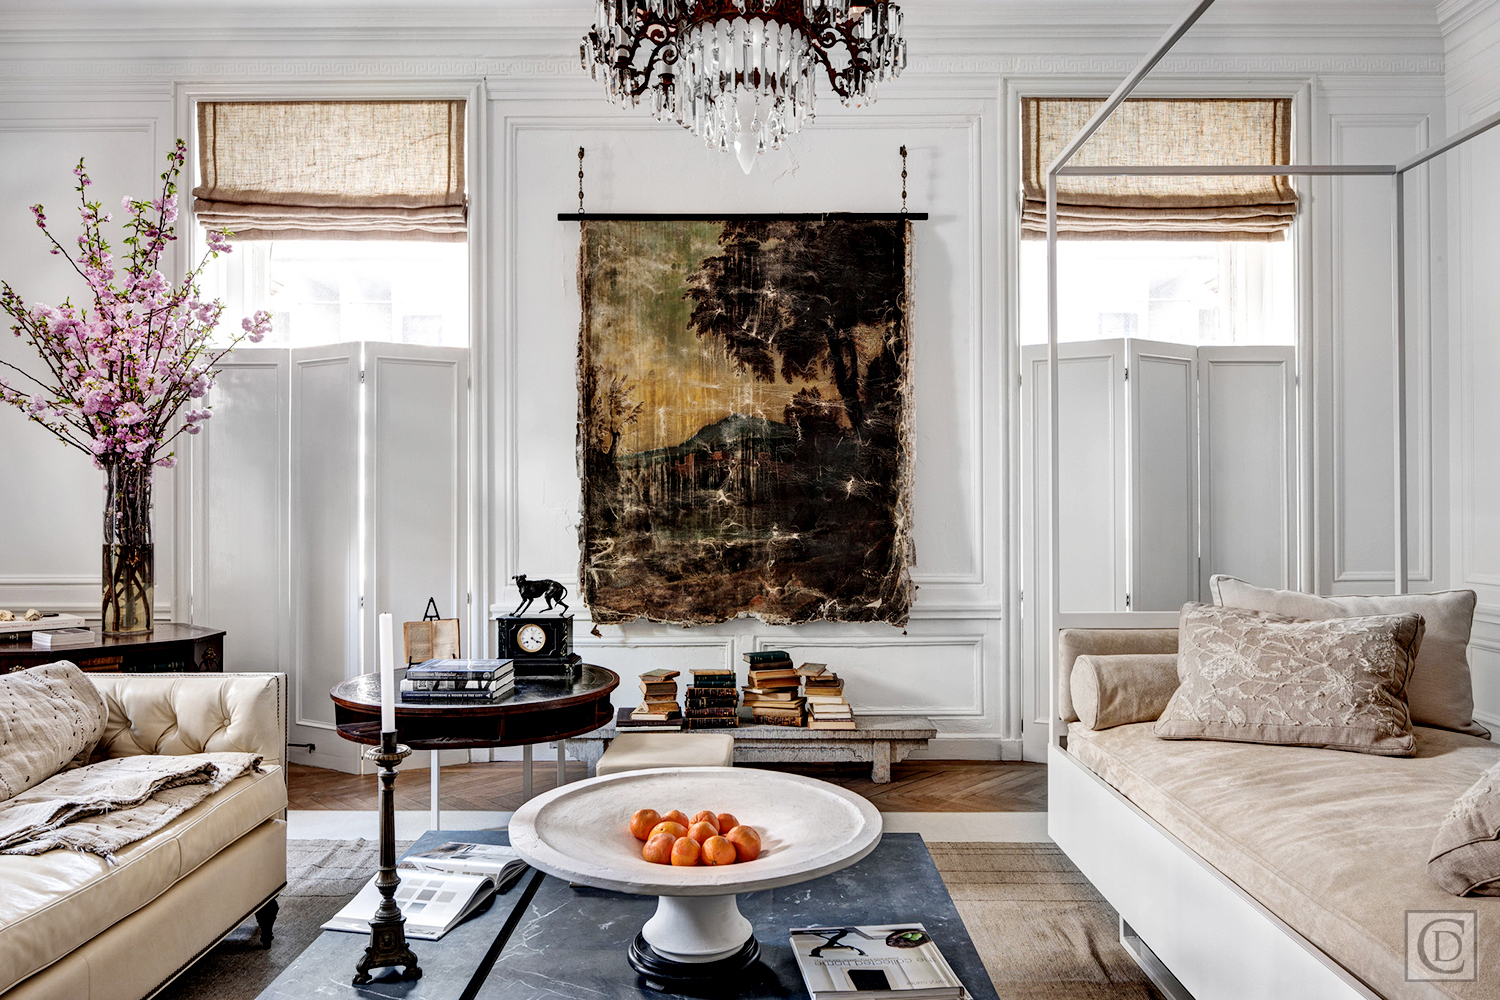 Top Washington DC interior designer Darryl Carter